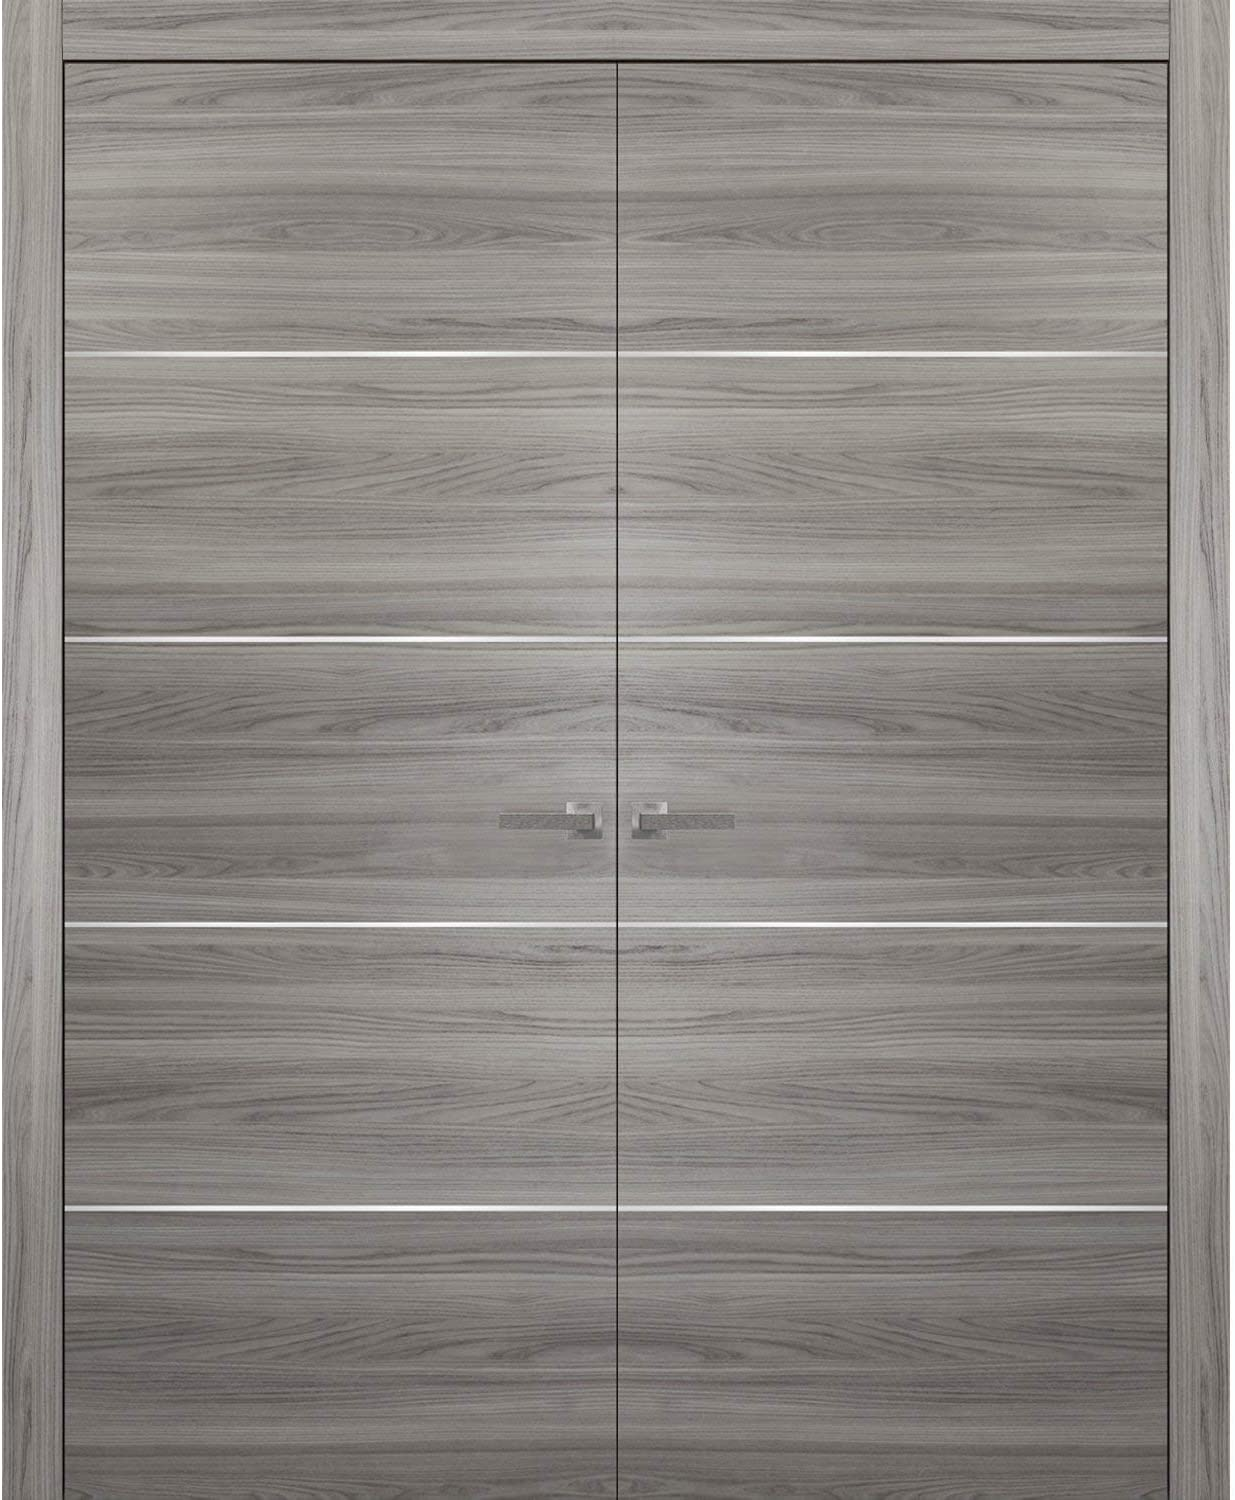 2021 Grey Modern French Doors 72 Brand Cheap Sale Venue x Planum with 80 Gin Moldings 0020